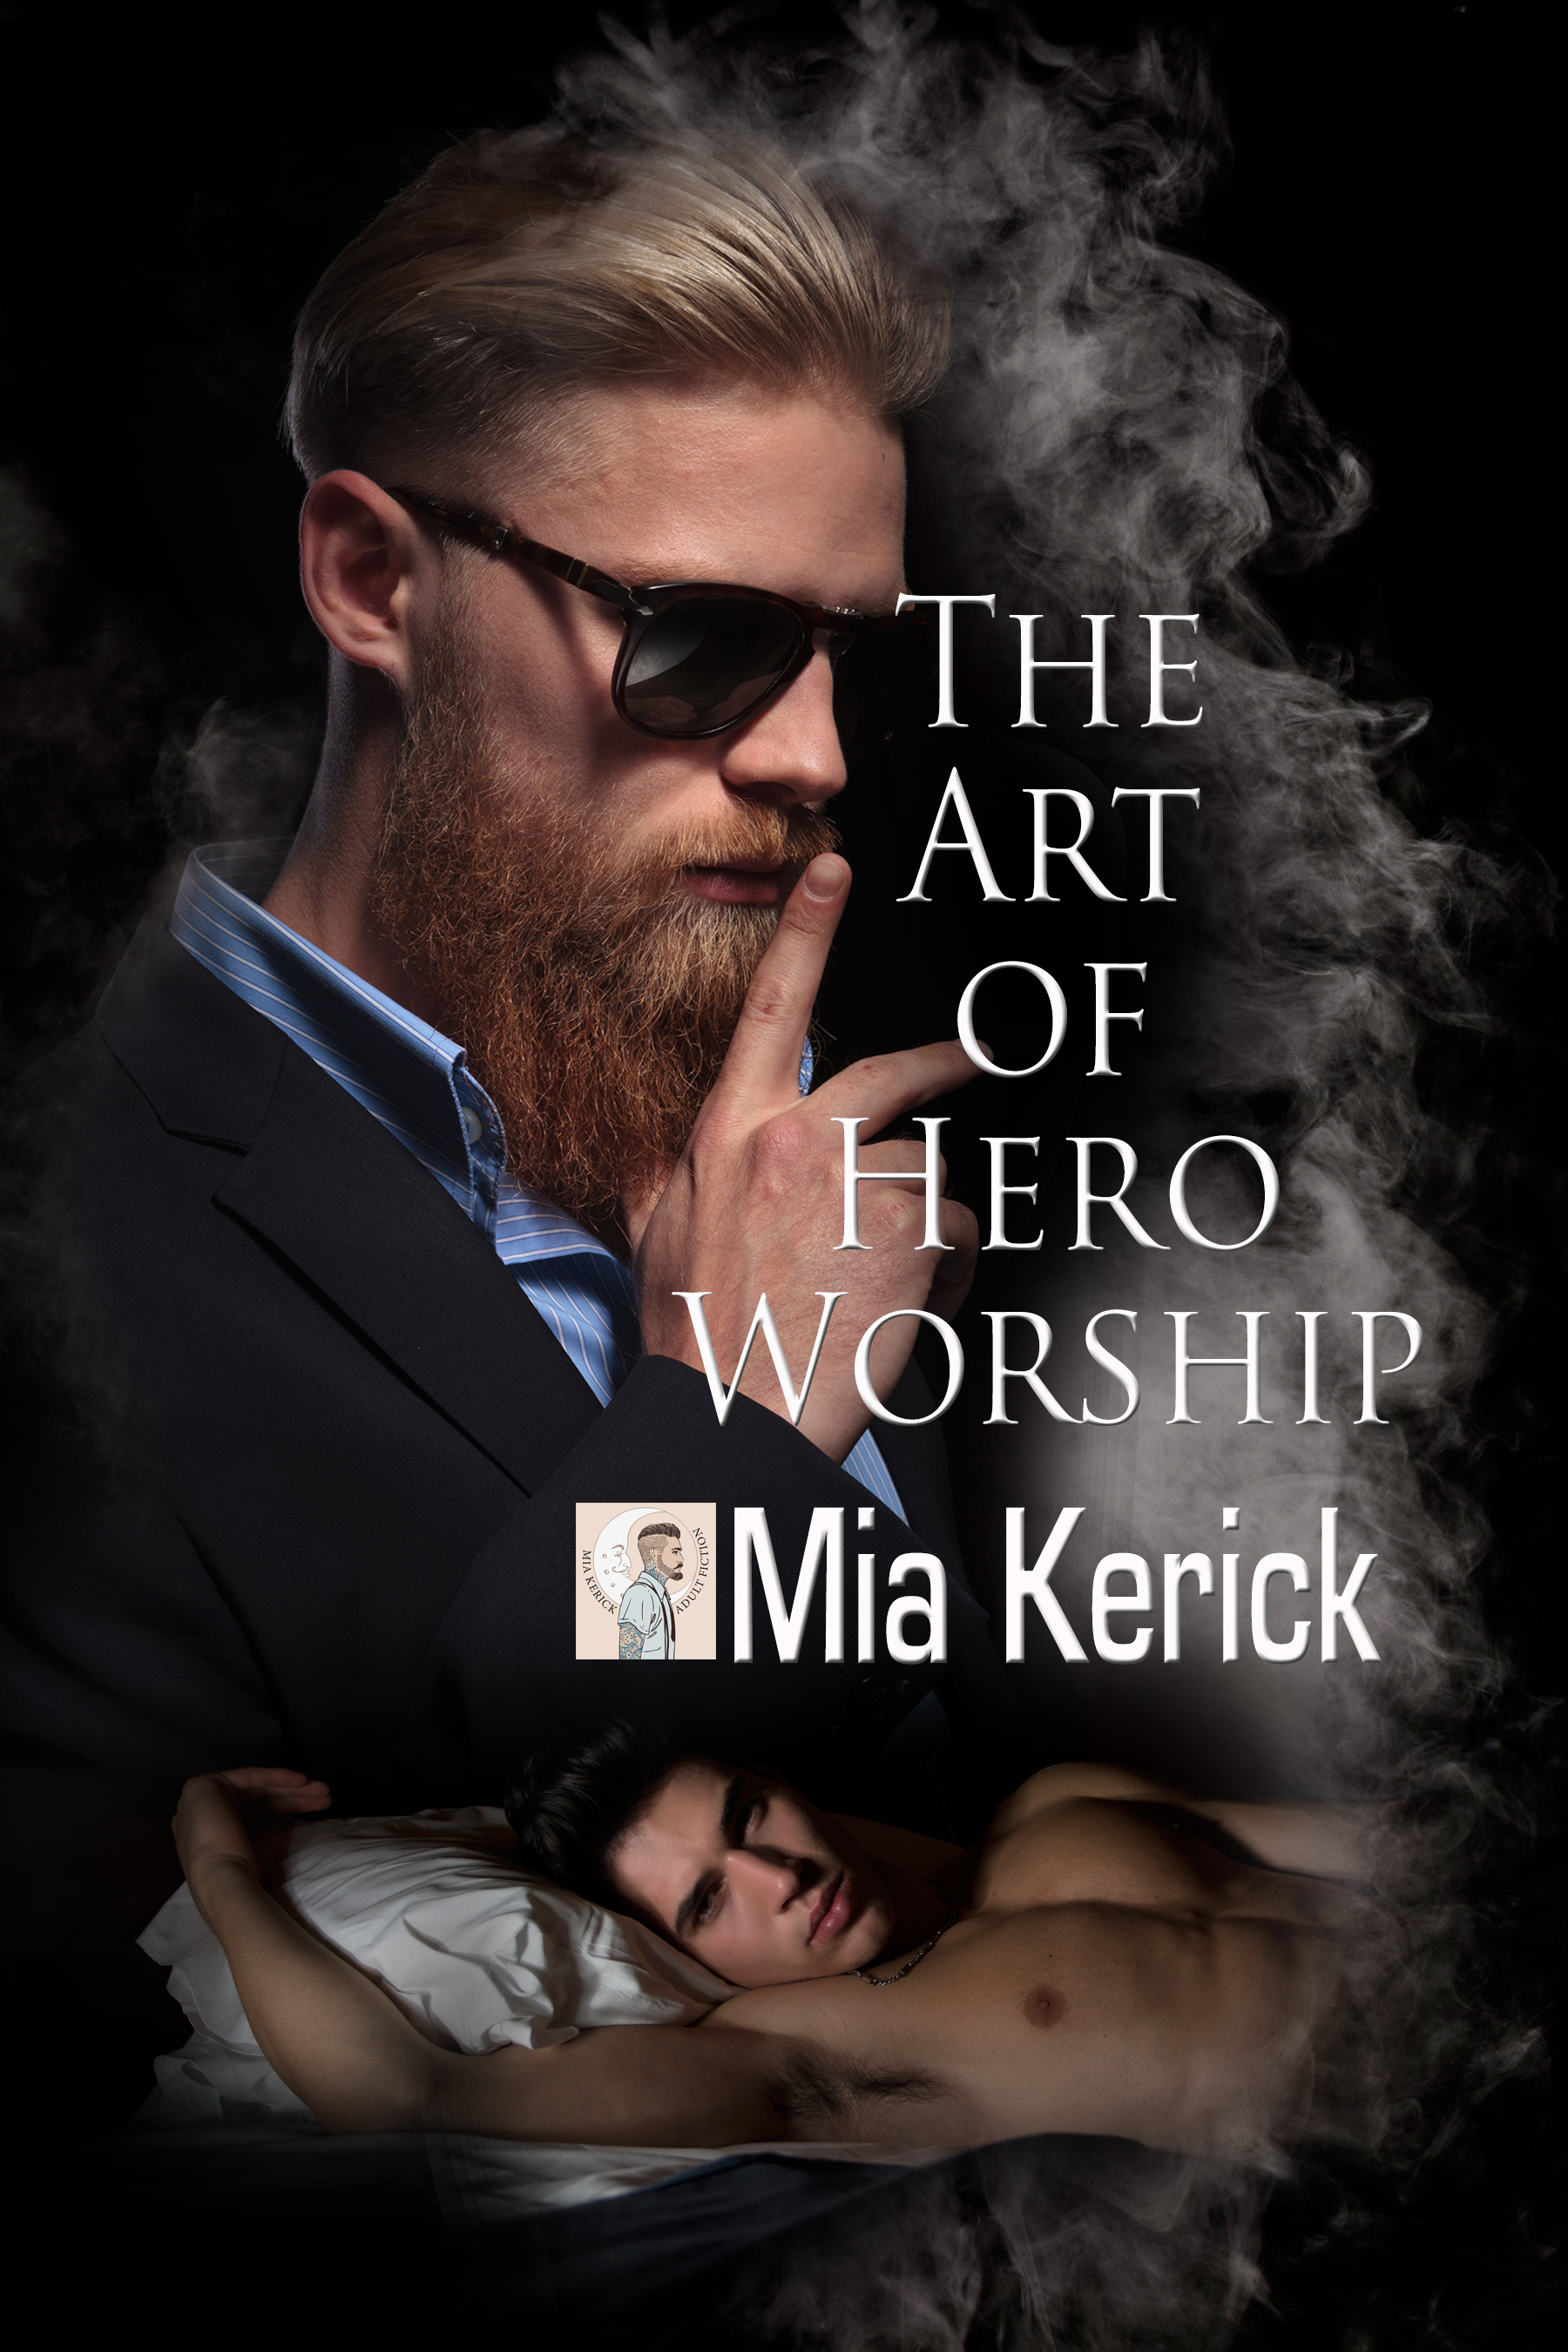 Review: The Art of Hero Worship by Mia Kerick